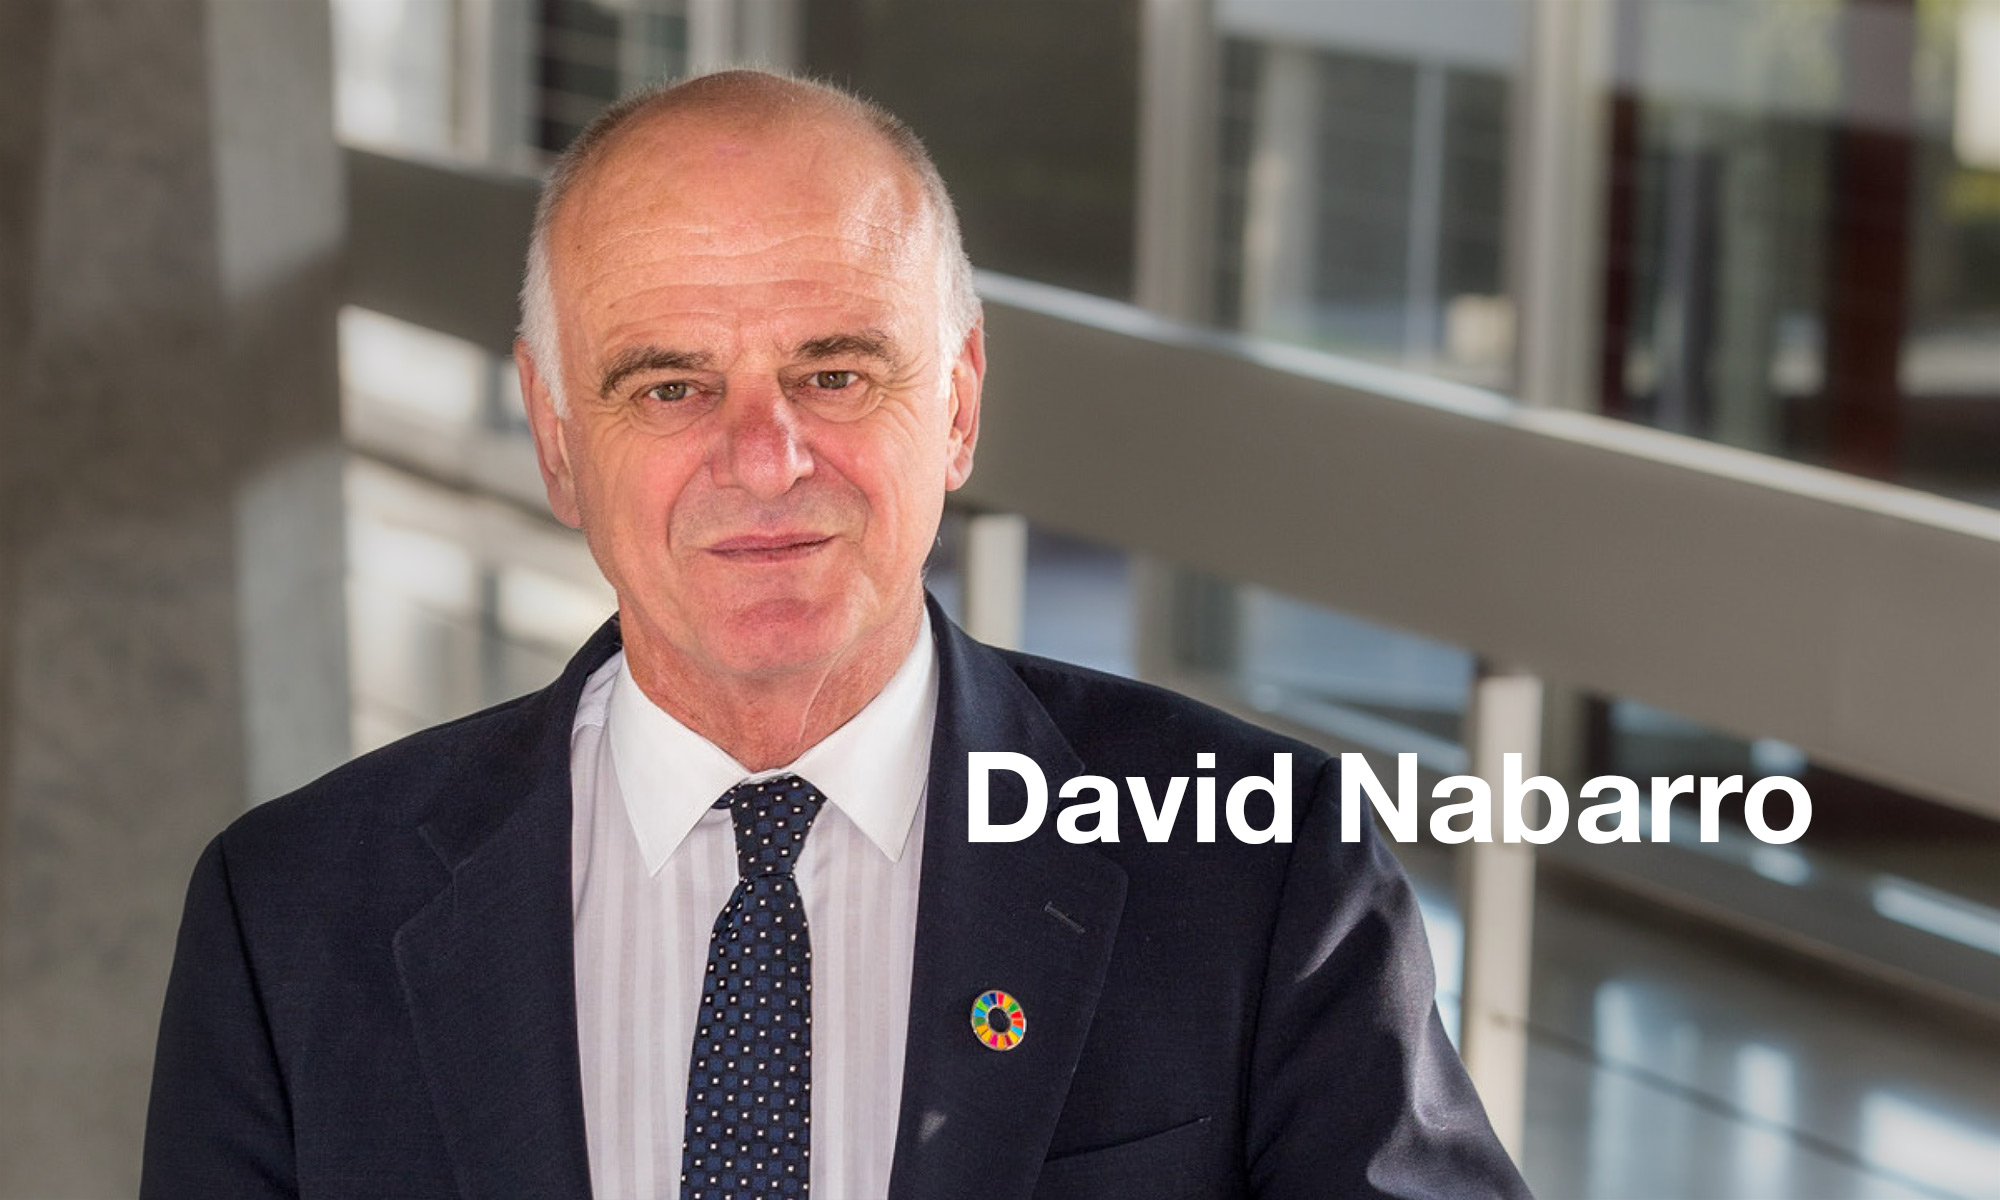 Portrait of David Nabarro